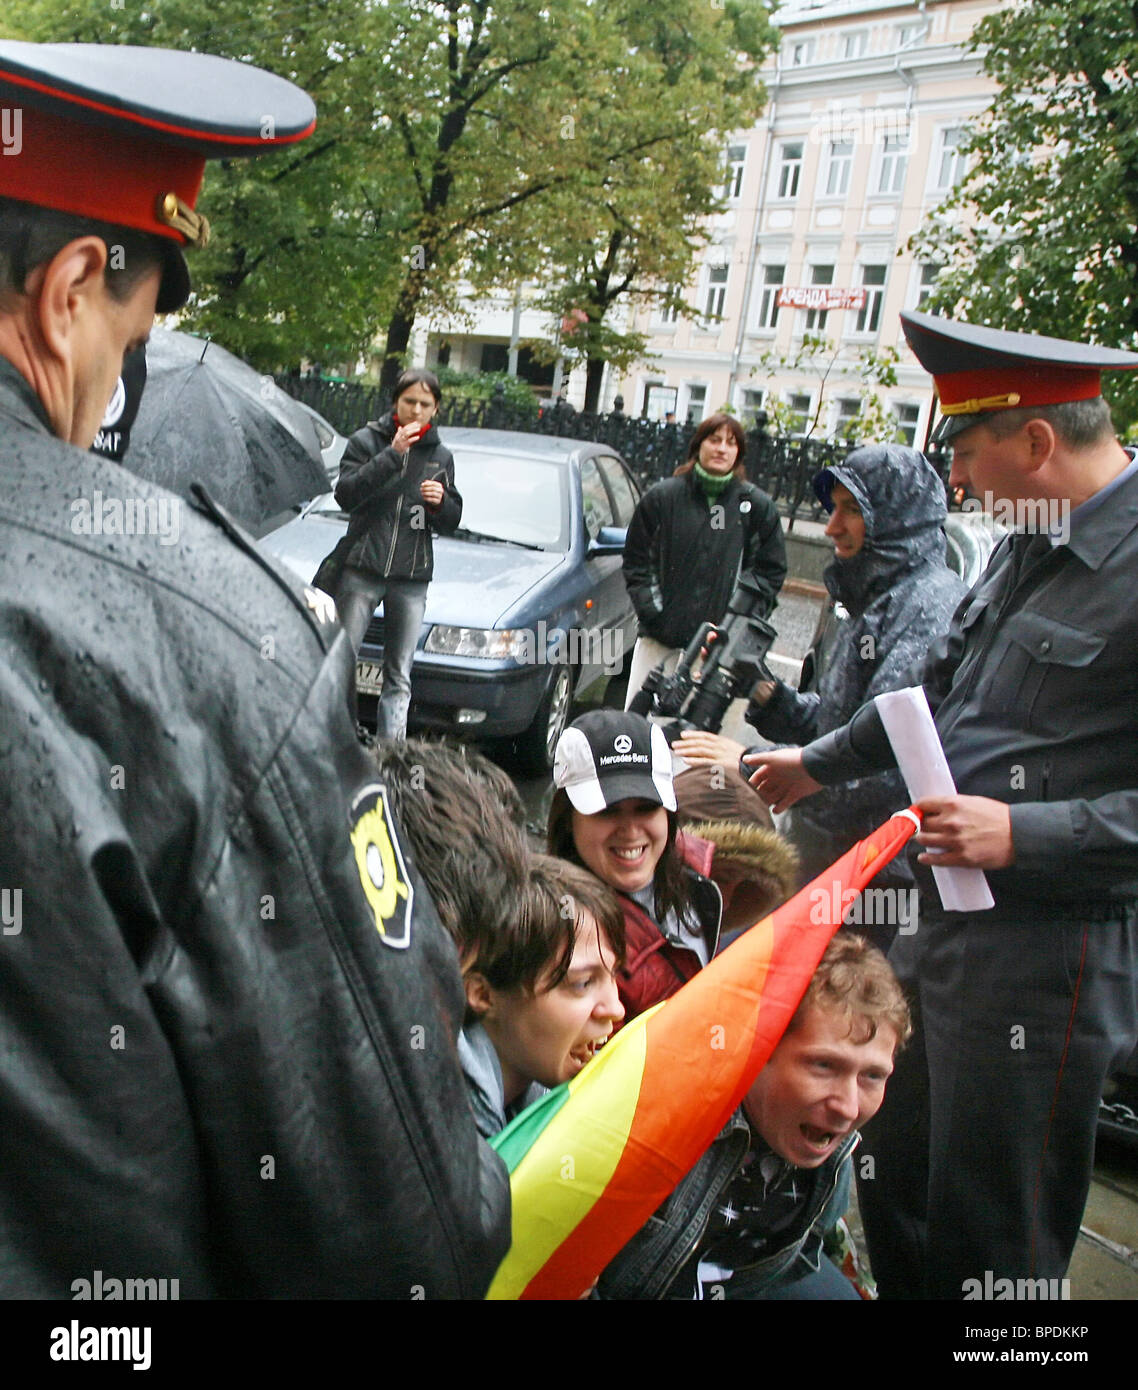 Gays protest against blood donation ban in Moscow - Stock Image